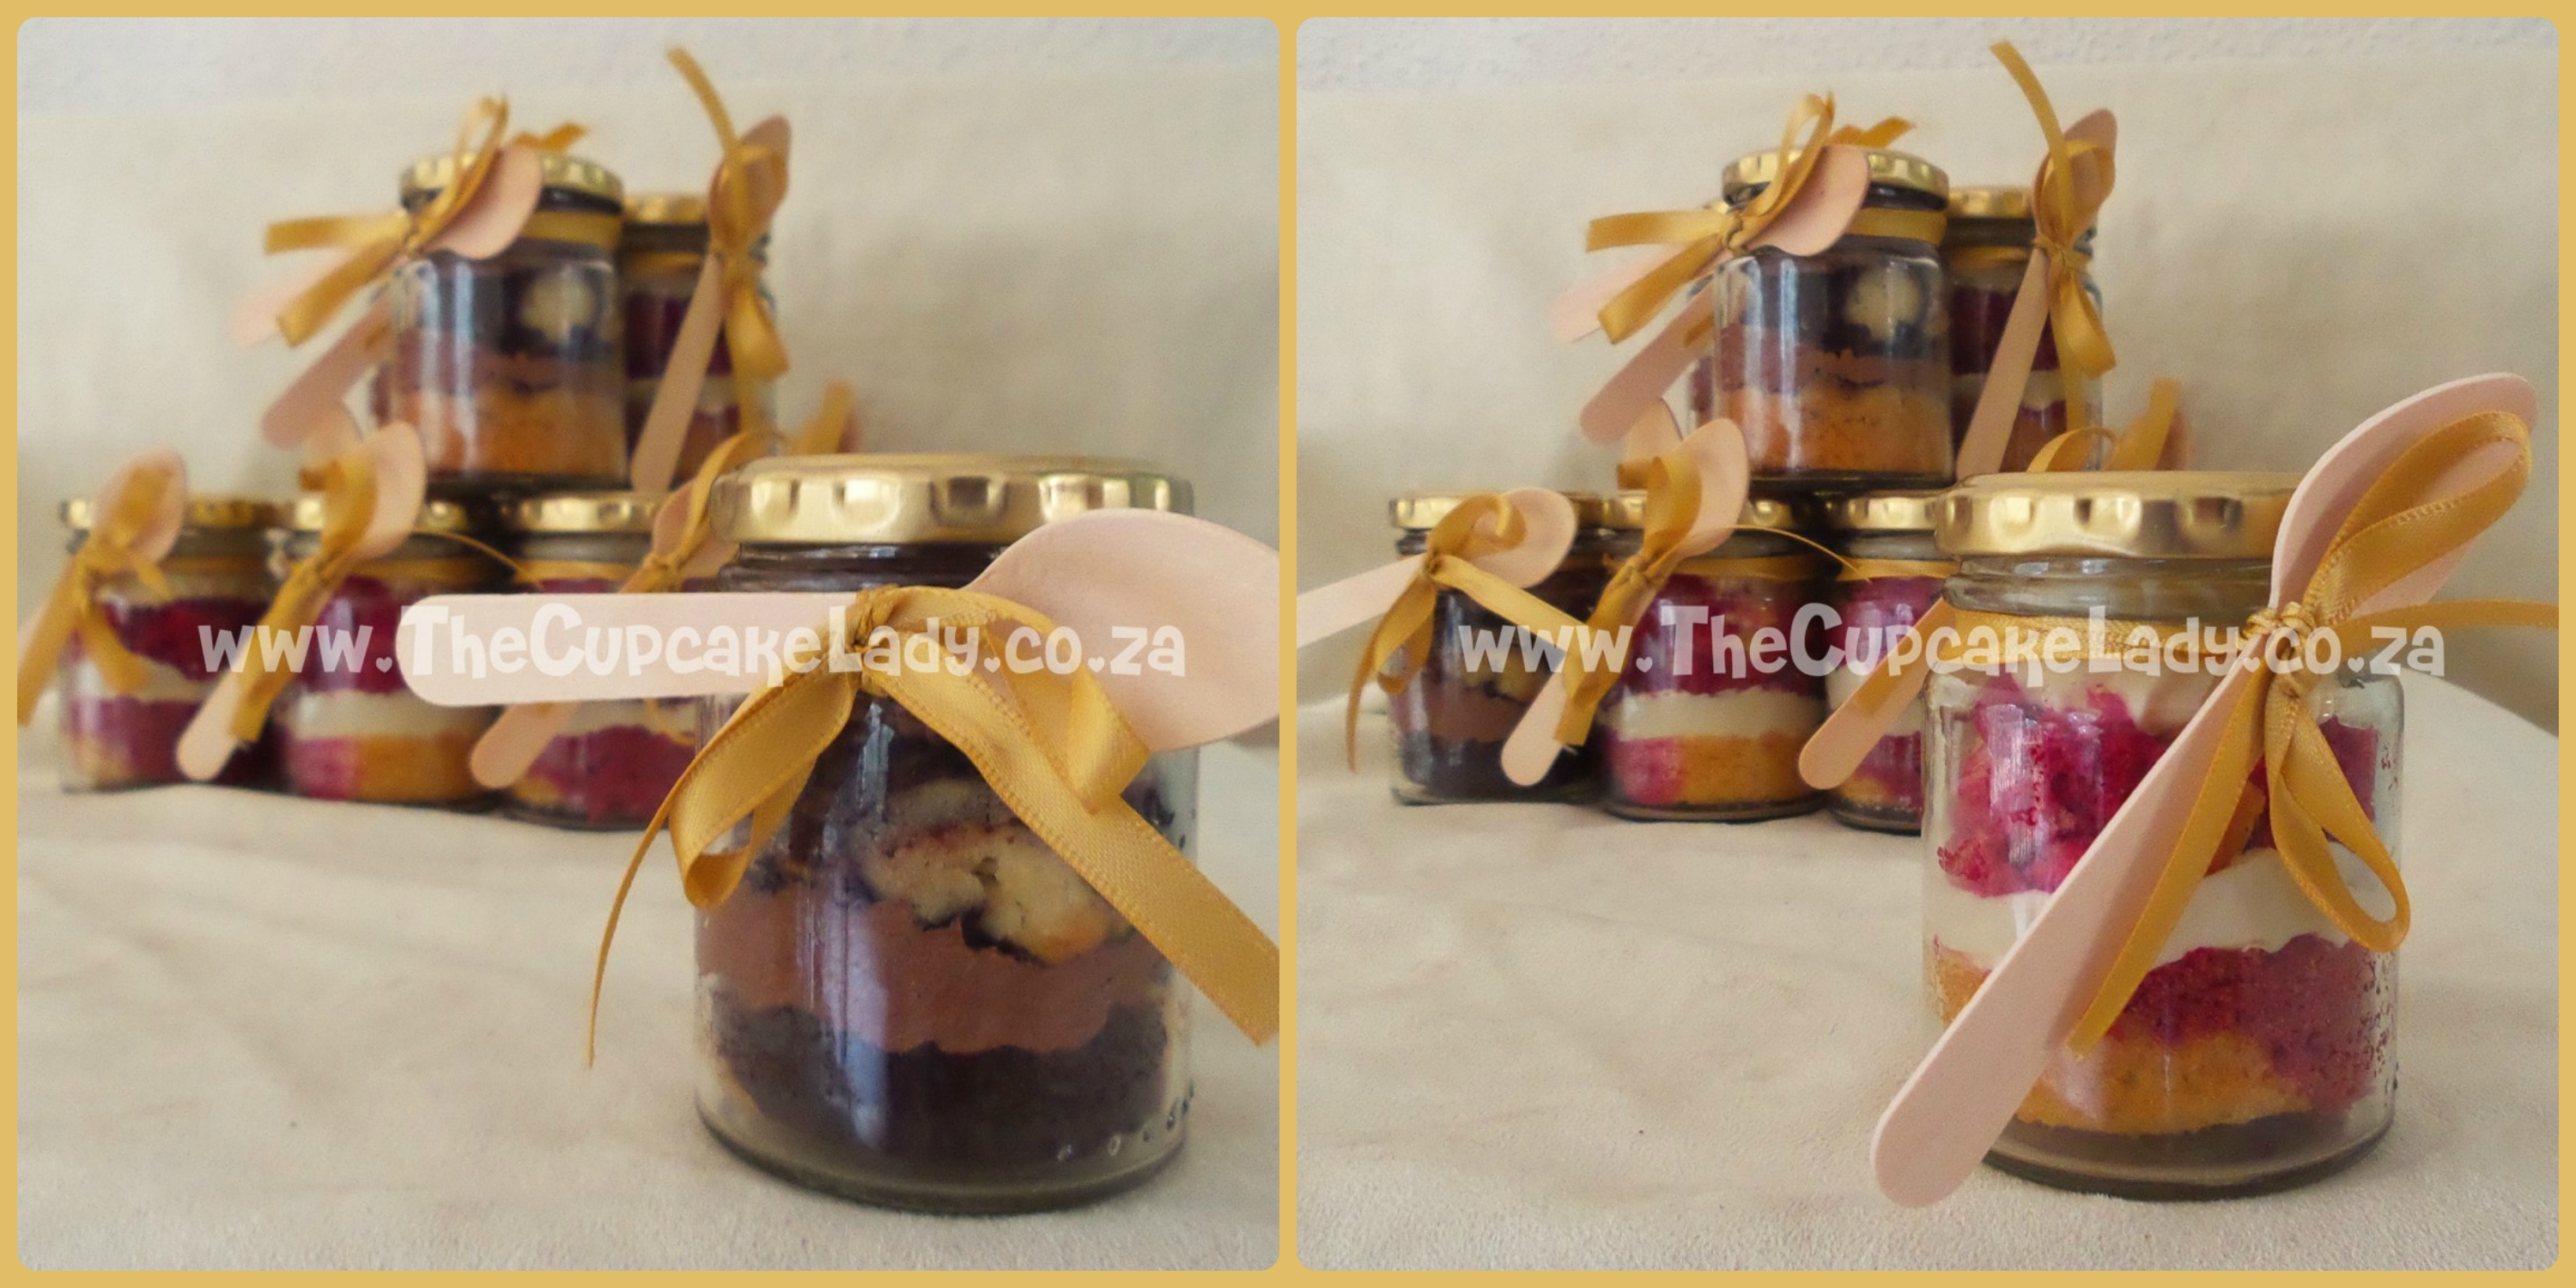 cupcake-in-a-jar, gold ribbons, wooden spoons, vanilla chocolate marble cupcakes, chocolate butter icing, vanilla red velvet marble cupcakes, cream cheese icing